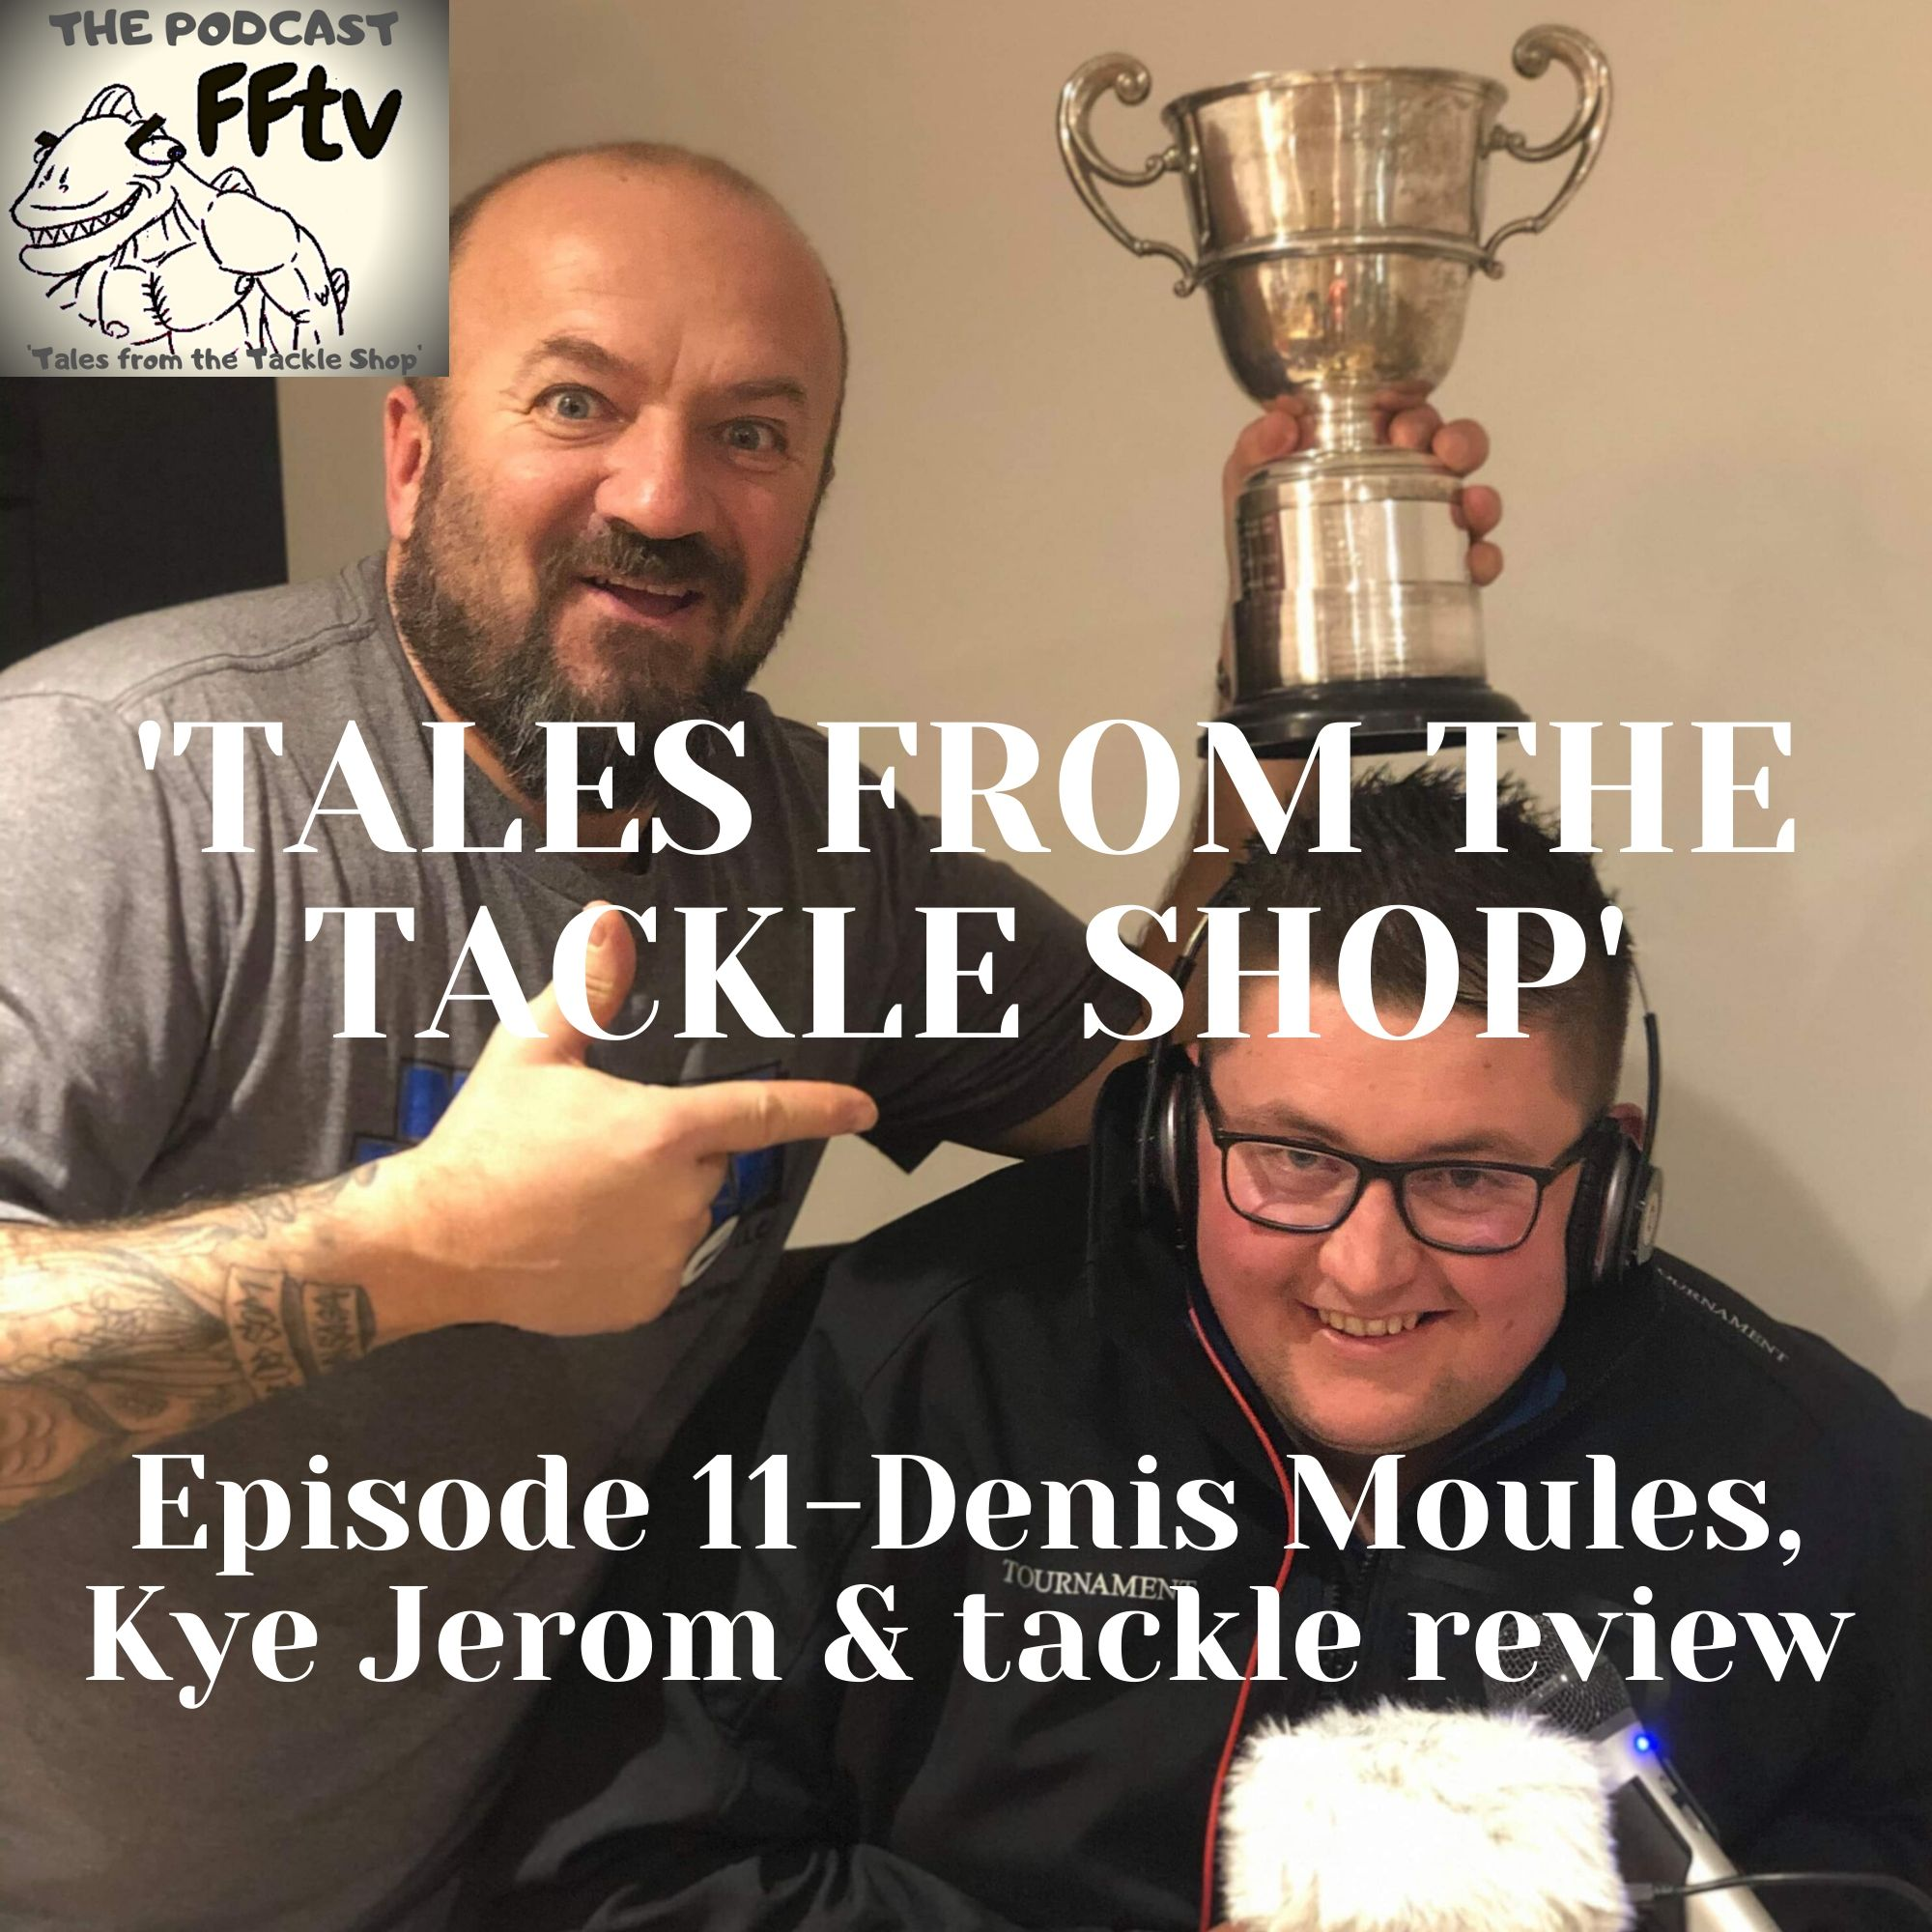 Episode 11 - Denis Moules, Kye Jerom and tackle review